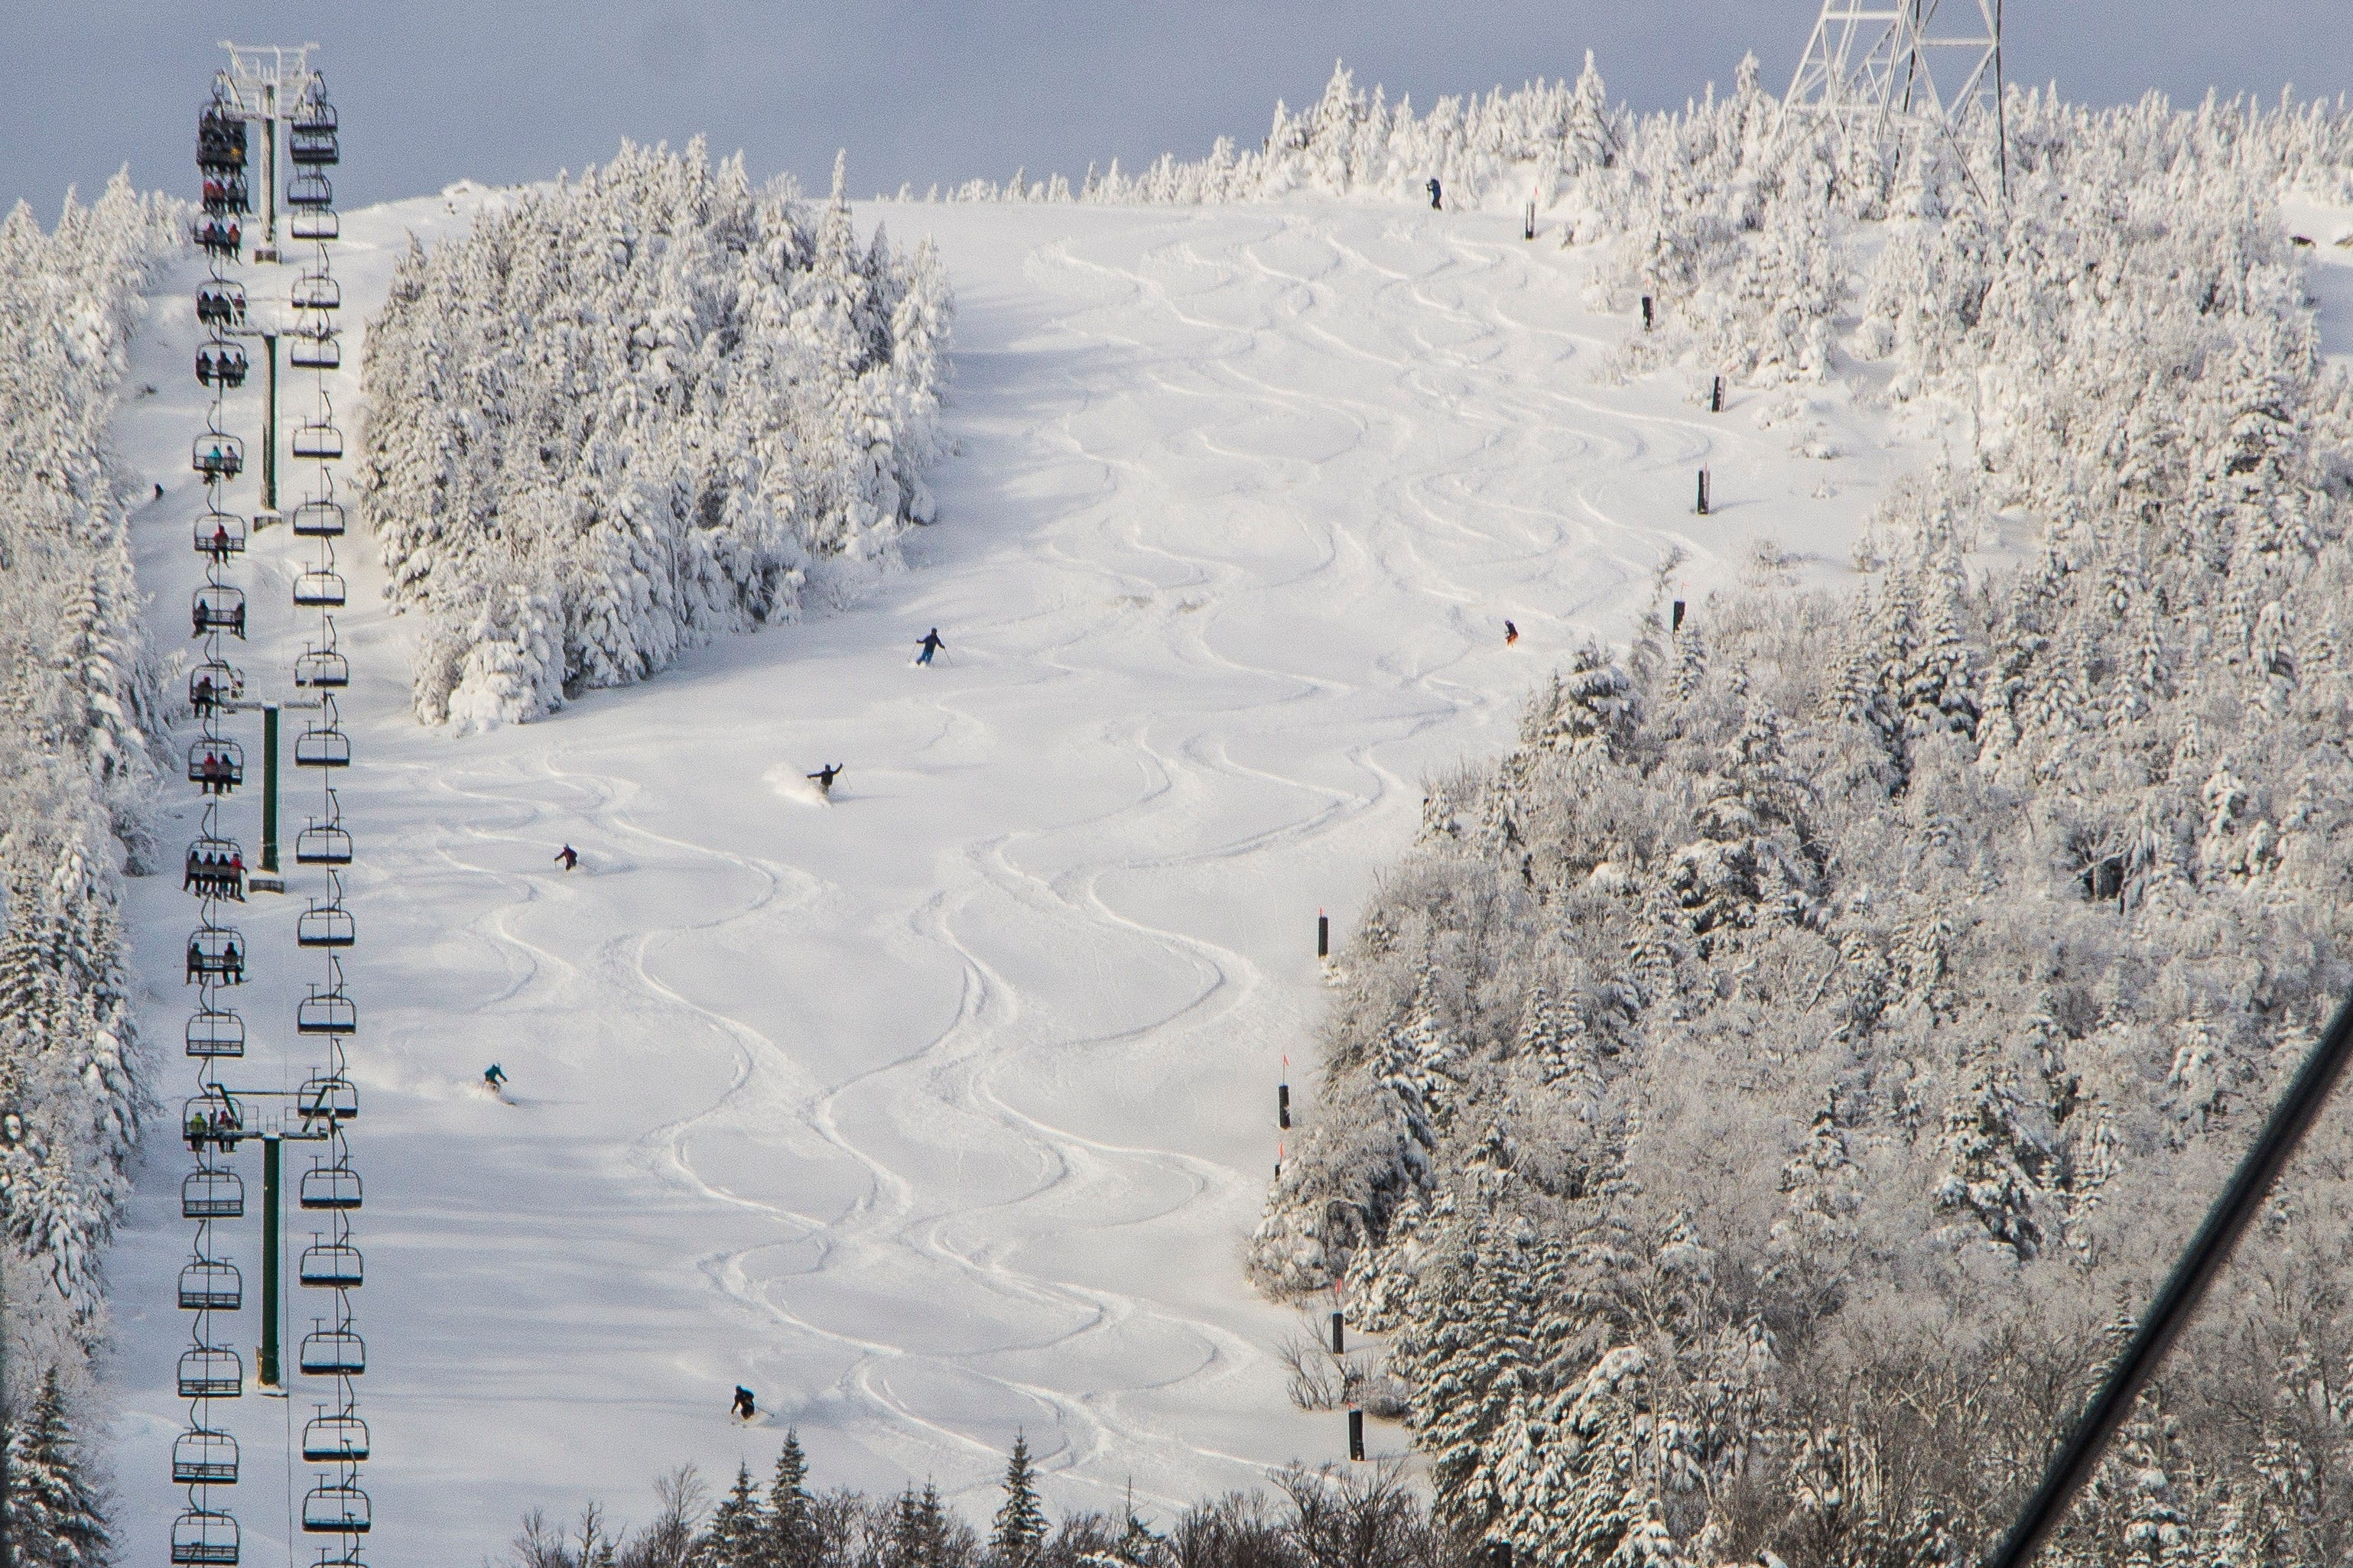 Jay Peak Resort, just a few miles from the Canadian border in Vermont, boasts the most snow on the East Coast. A series of expansions funded by foreign investors through the EB-5 economic development program, such as a climbing wall and golf course cottages, allowed the resort to increase its appeal to year-round visitors.